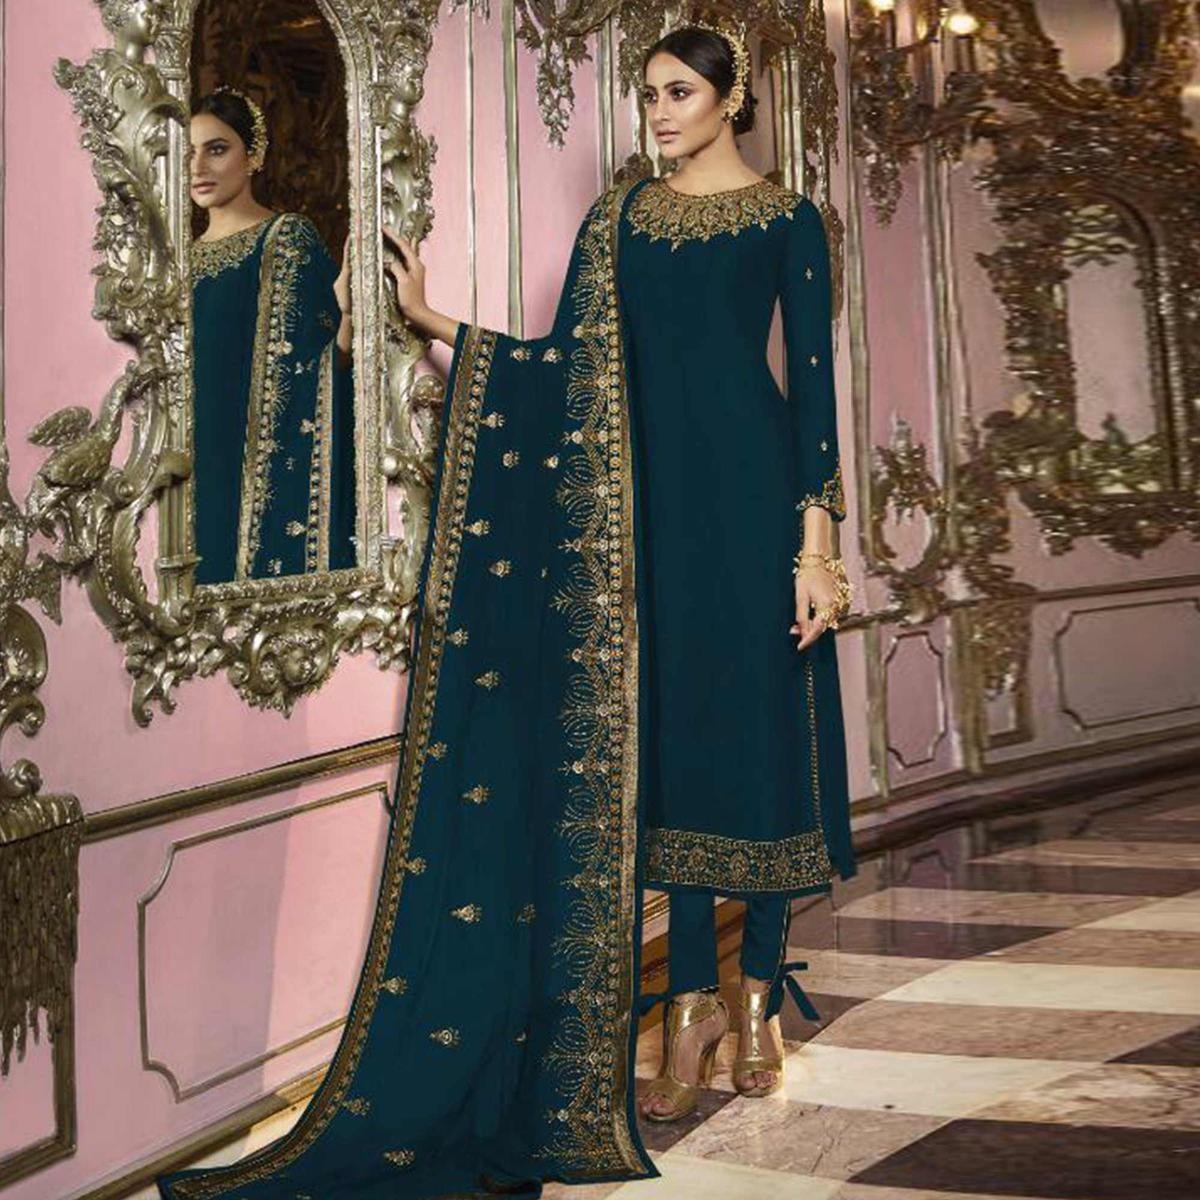 Energetic Dark Rama Blue Colored Partywear Embroidered Faux Georgette Suit